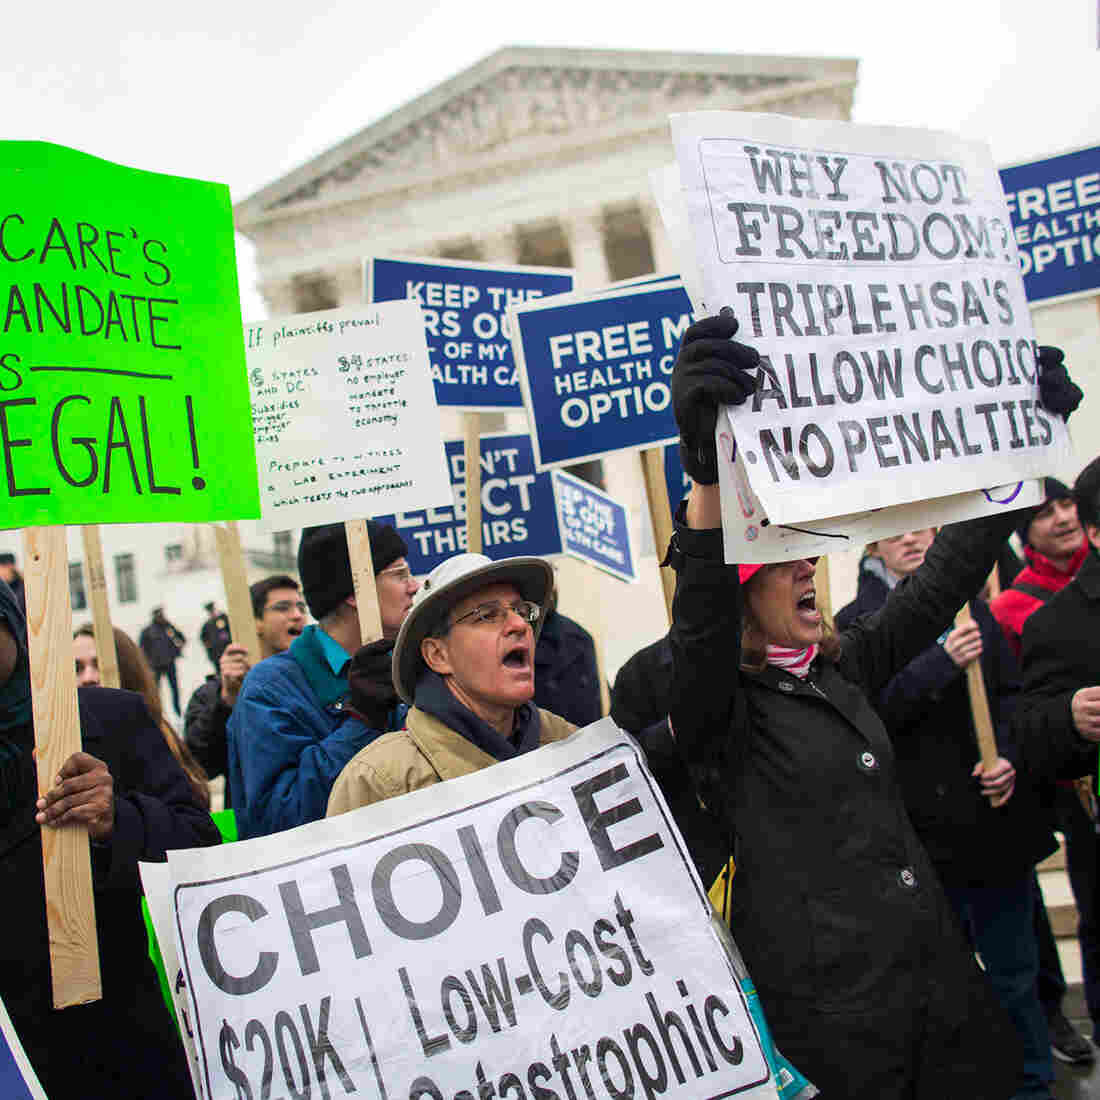 5 Questions Answered On The Legal Challenge To Obamacare Subsidies